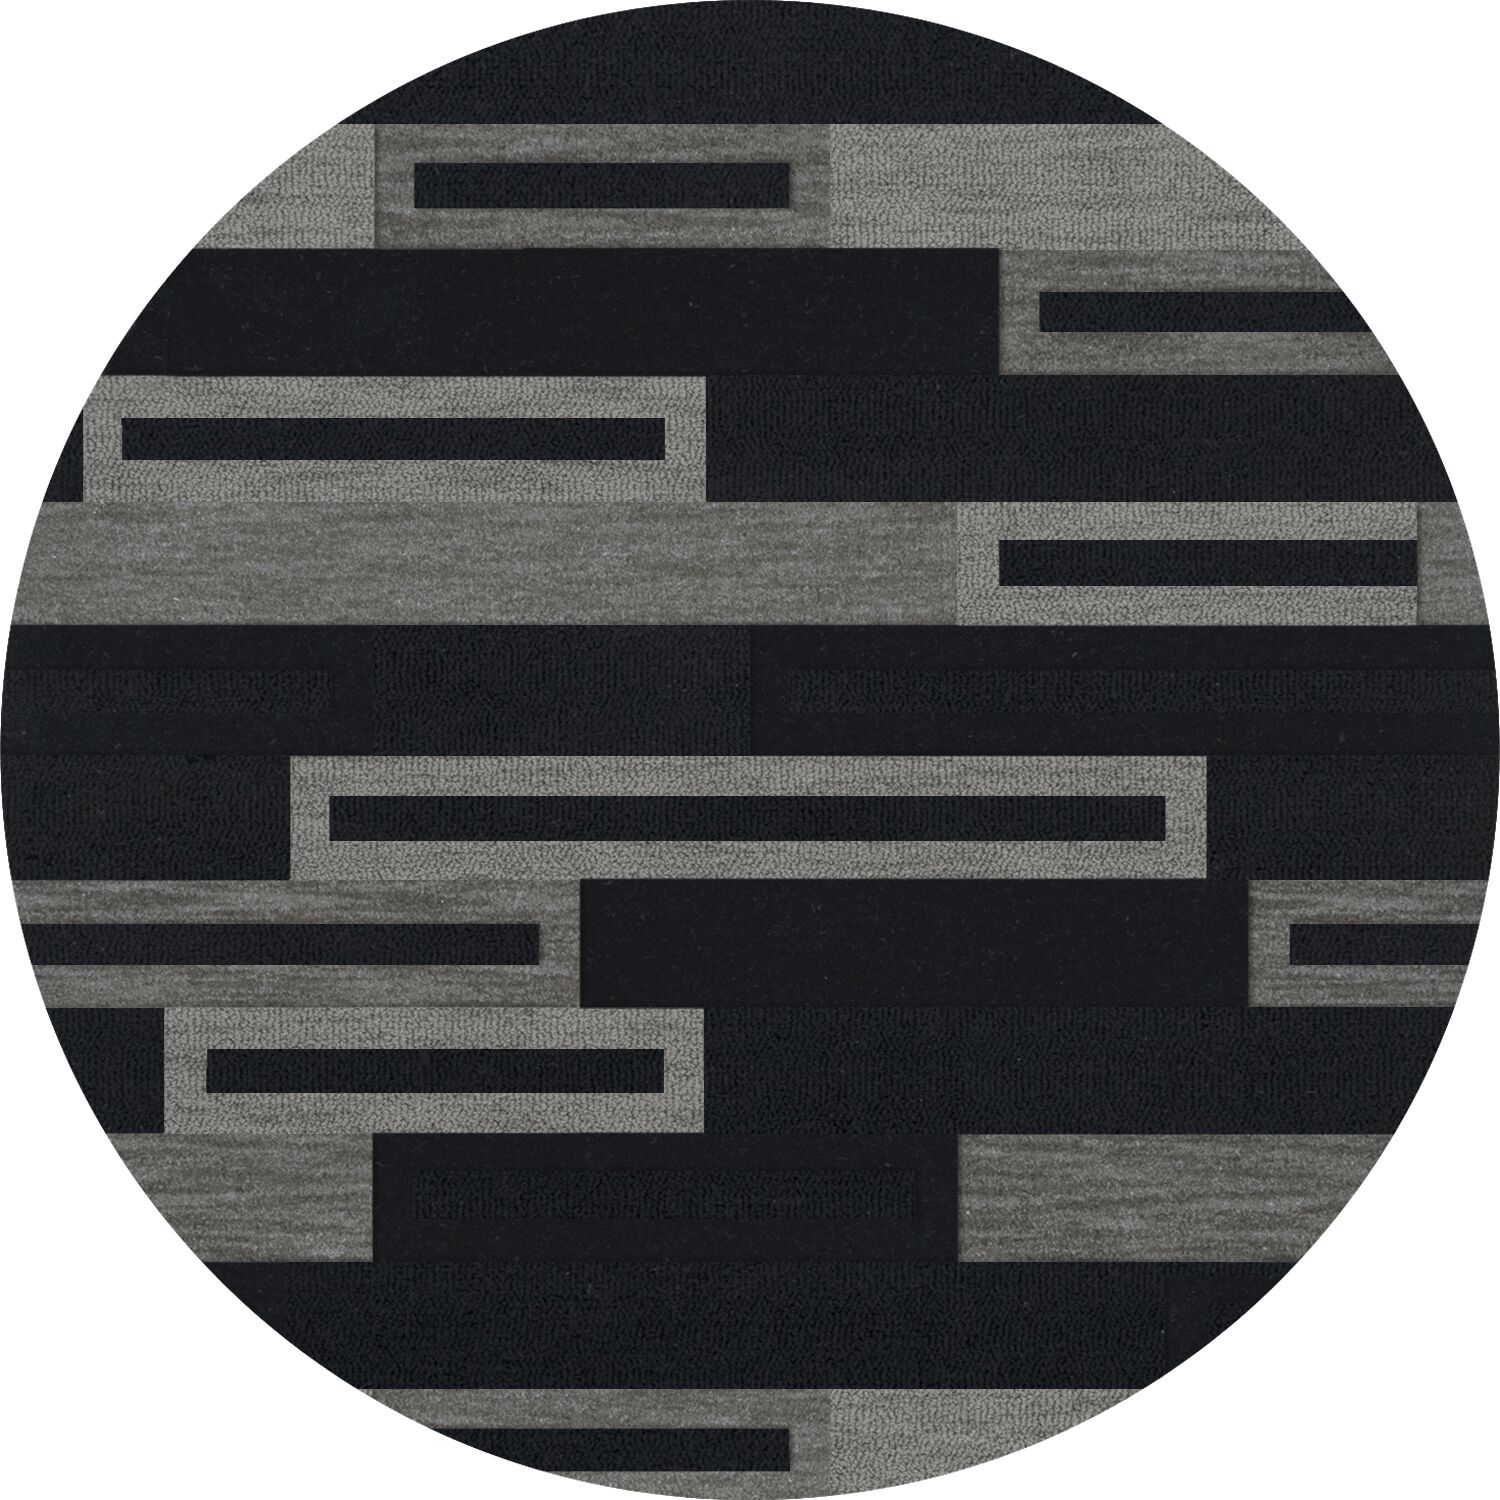 Bella Machine Woven Wool Black/Gray Area Rug Rug Size: Round 12'